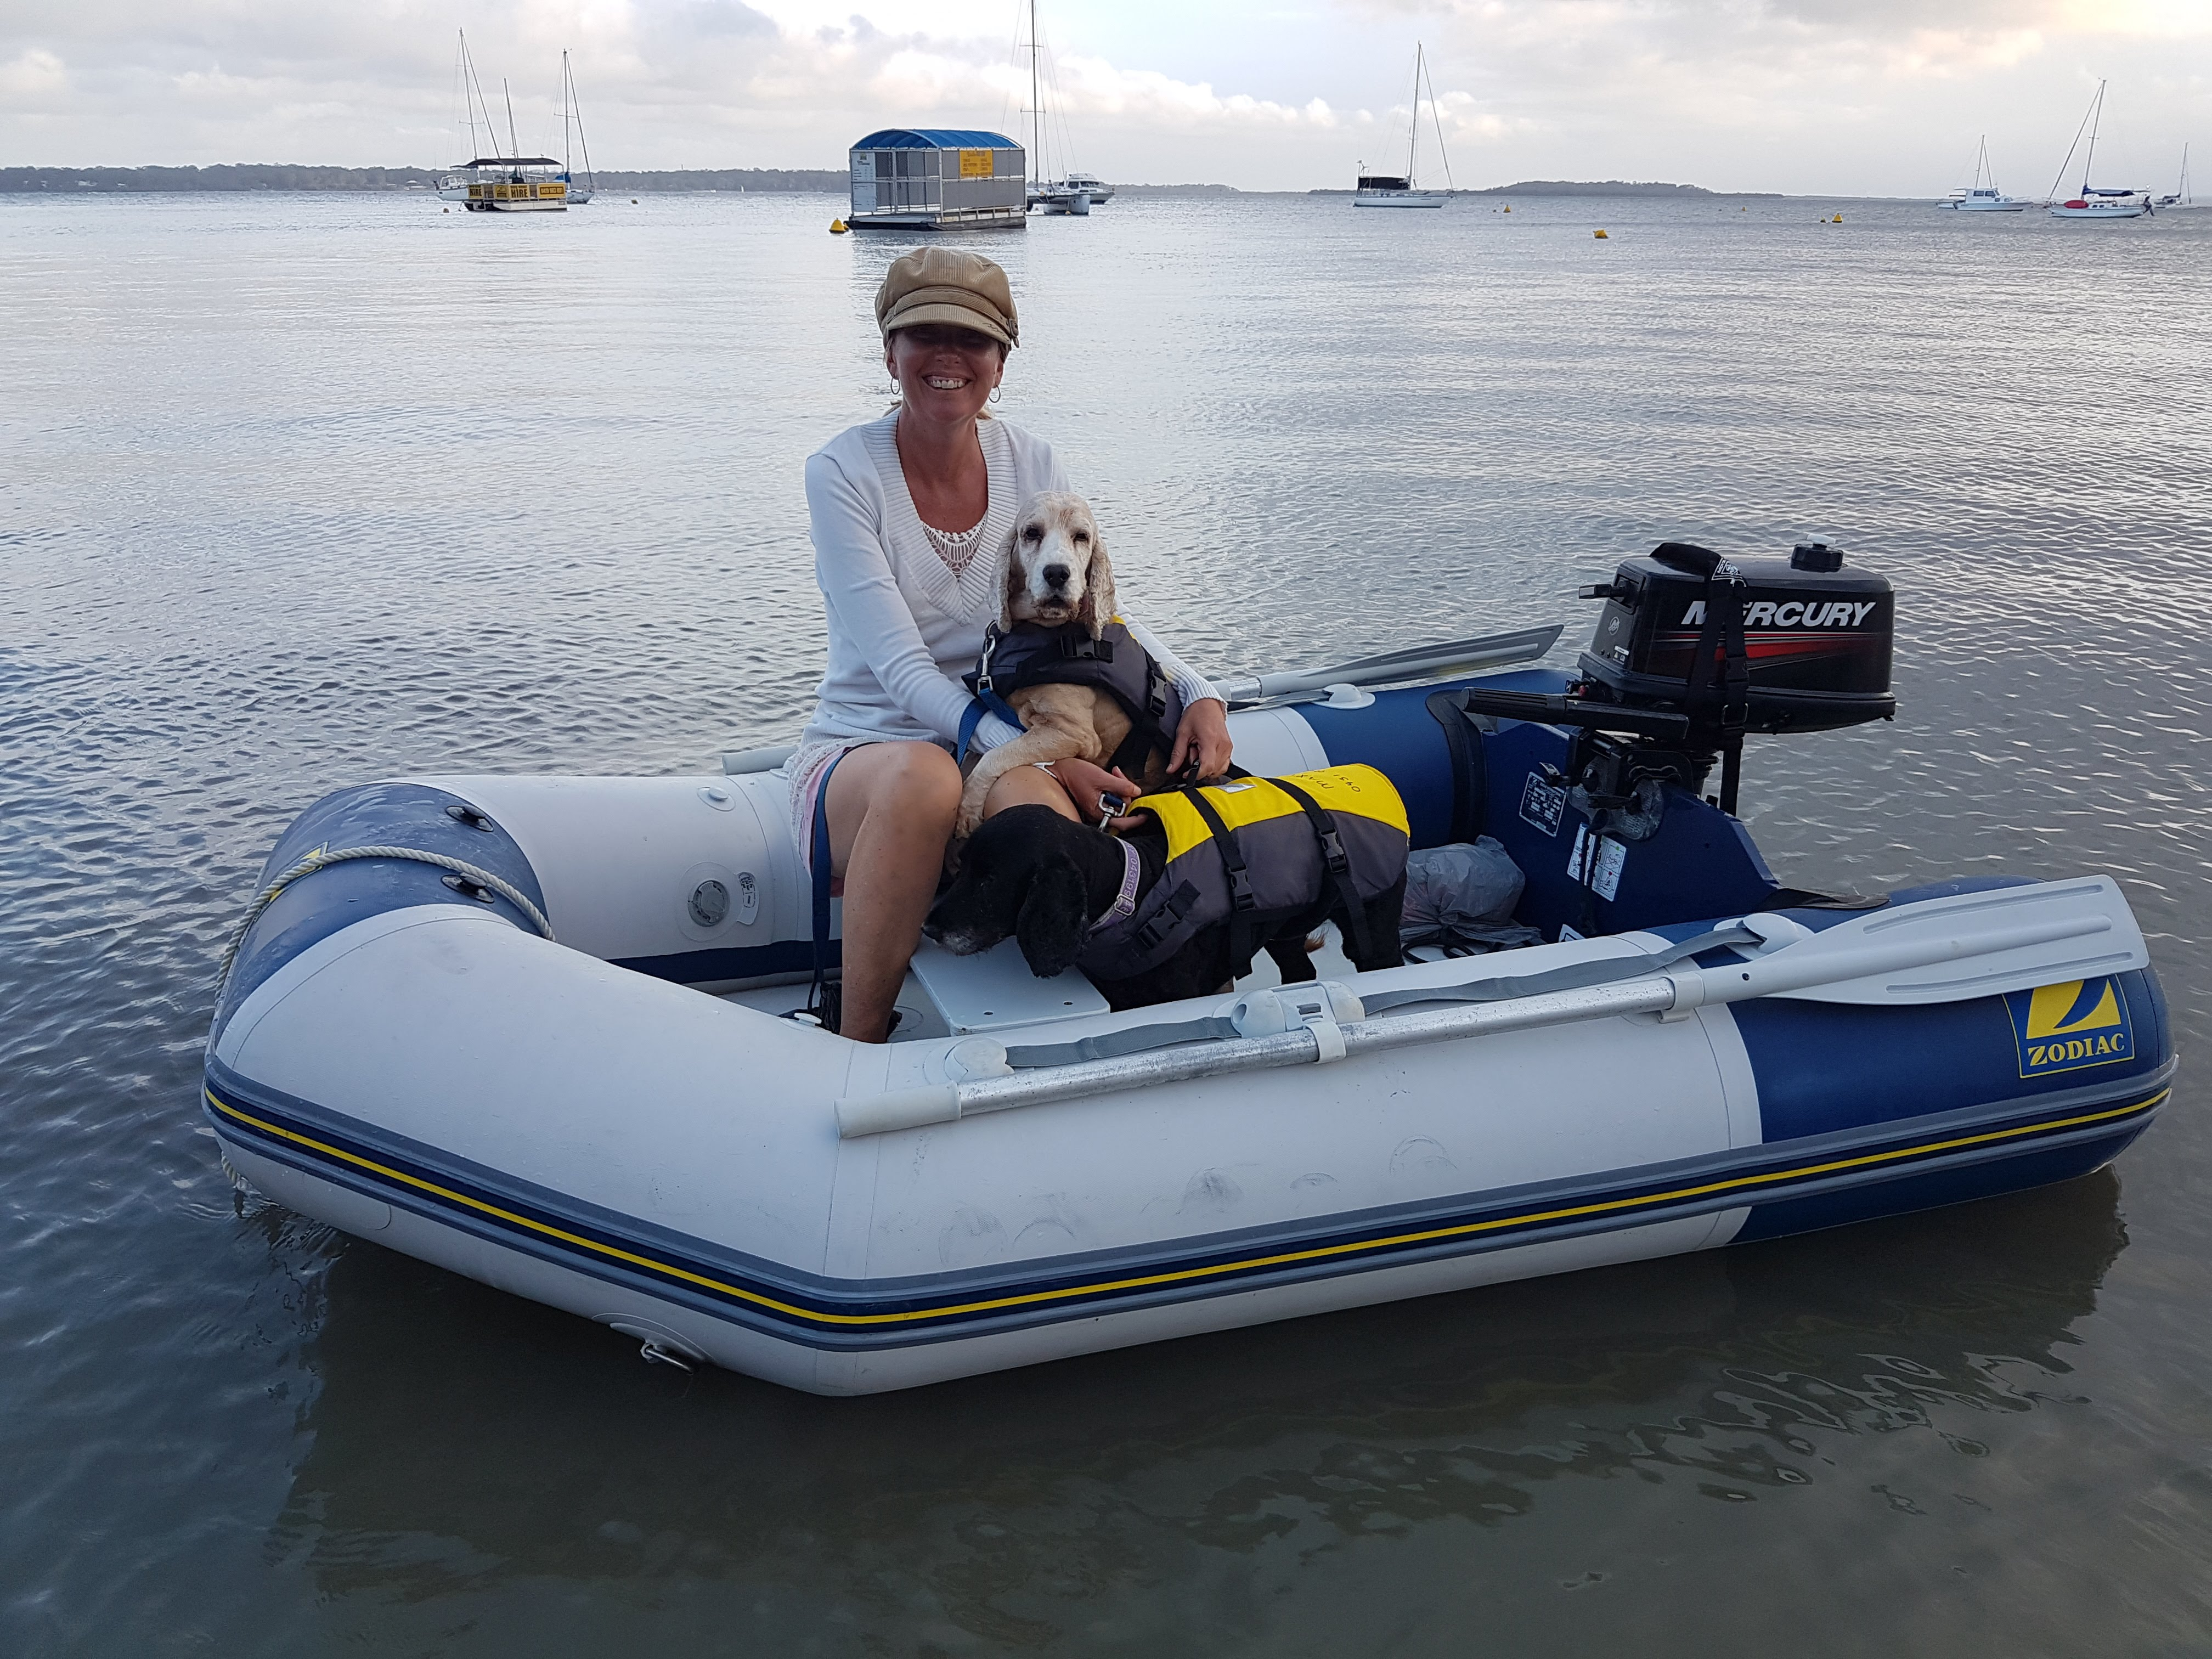 Toileting Solutions For Your Dog Onboard Your Boat – Dogs